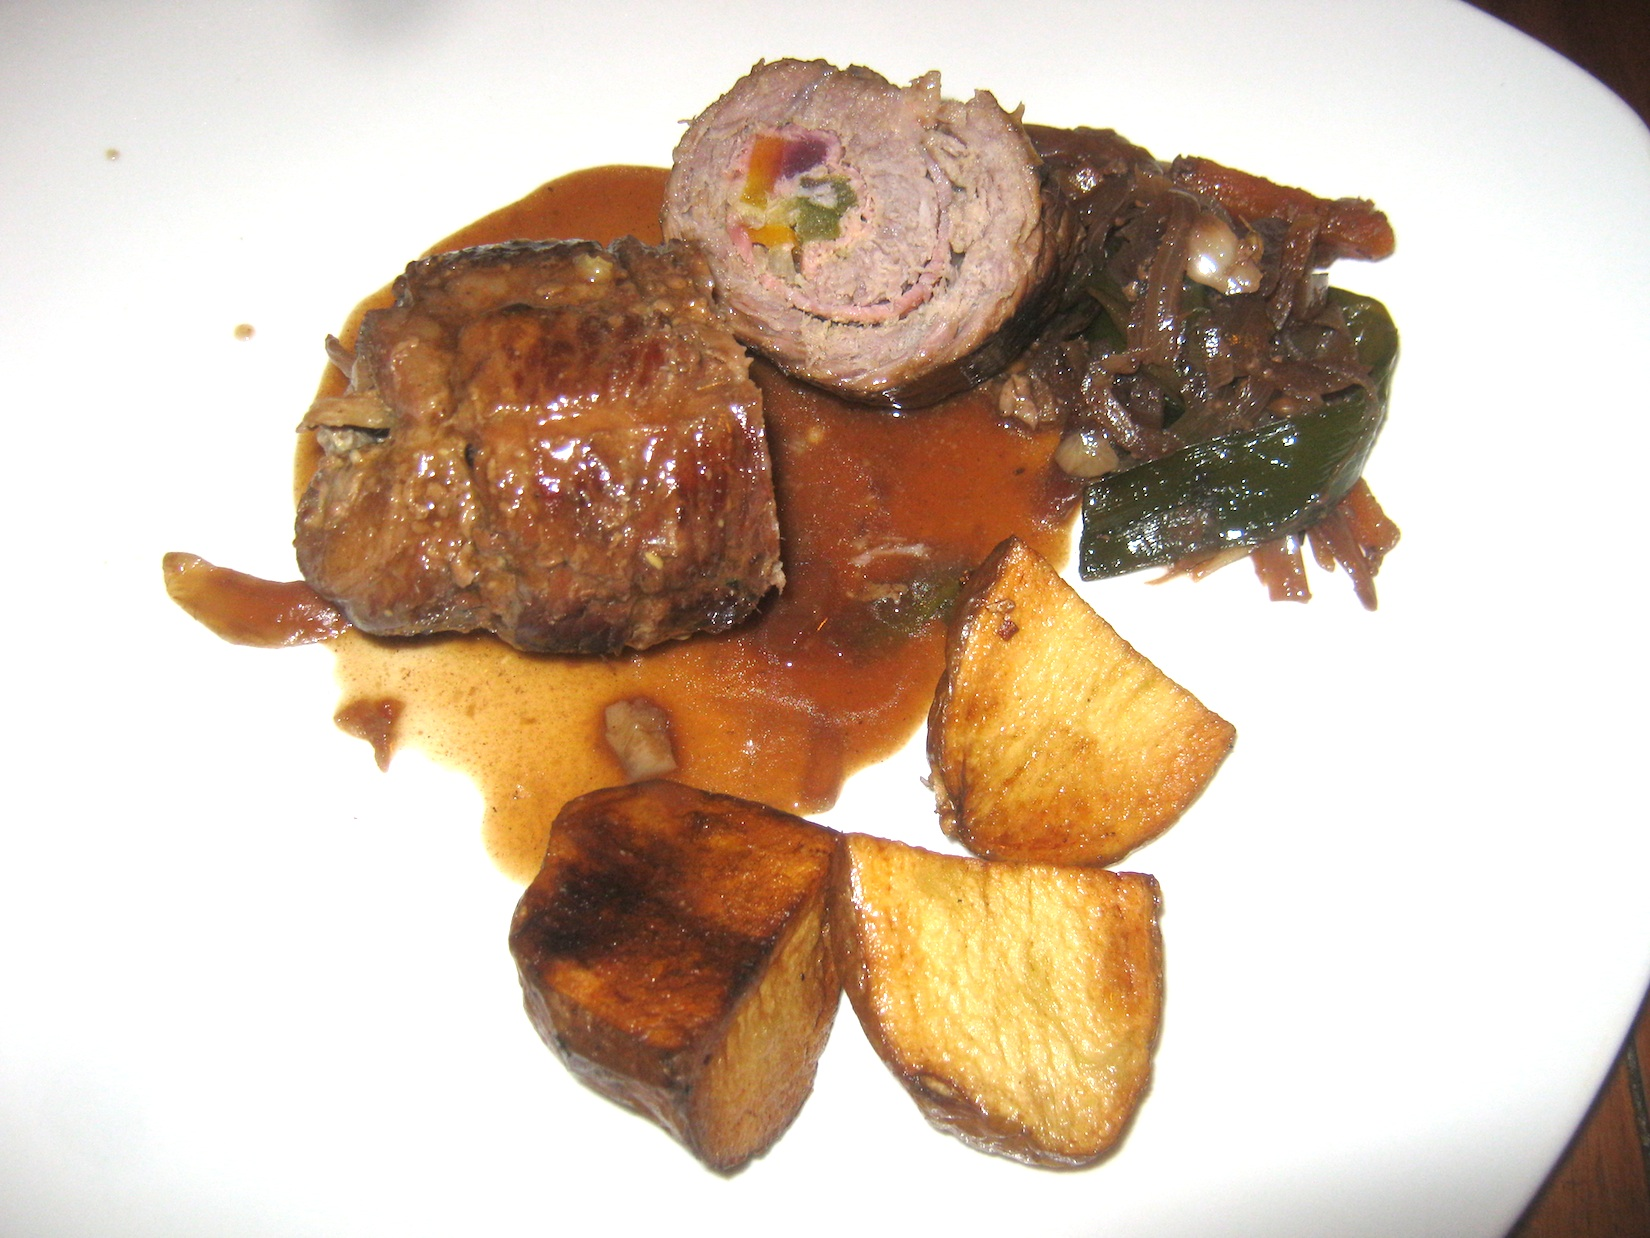 Beef roulades (Rinderrouladen) with braised vegetables, deep fried potatoes and gravy